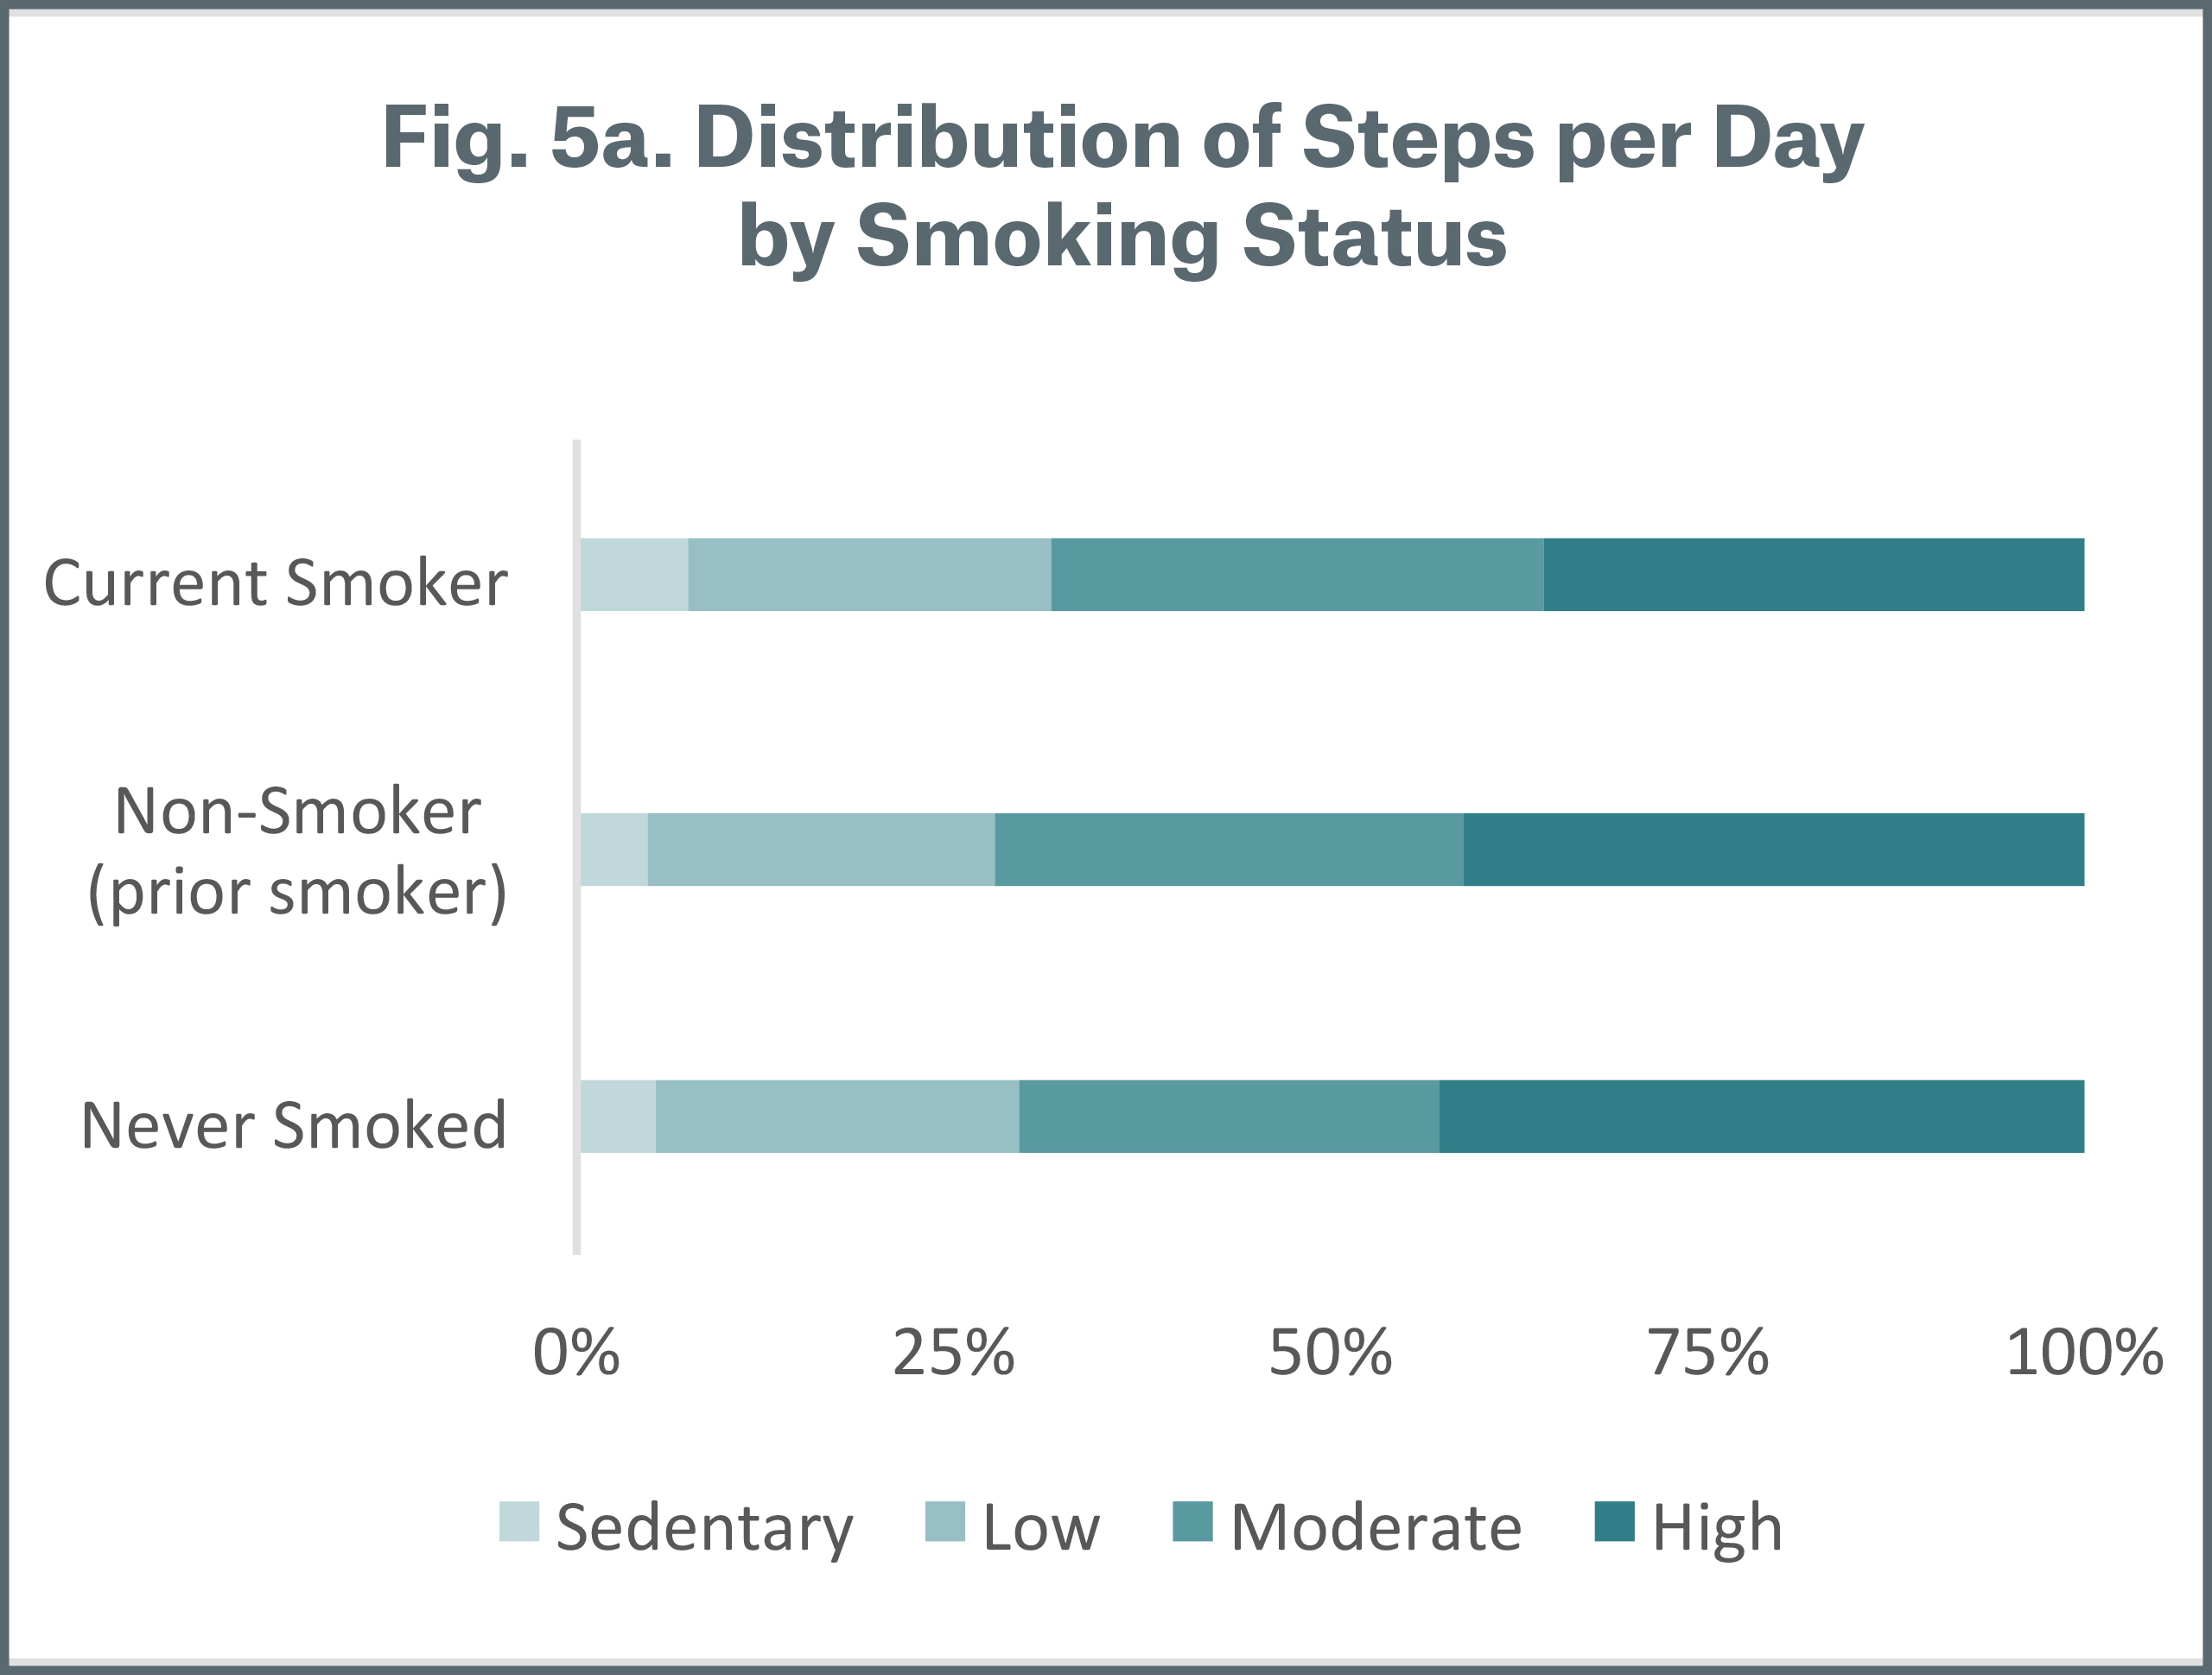 Figure 5a Distributions of Steps per Day by B Smoking Status